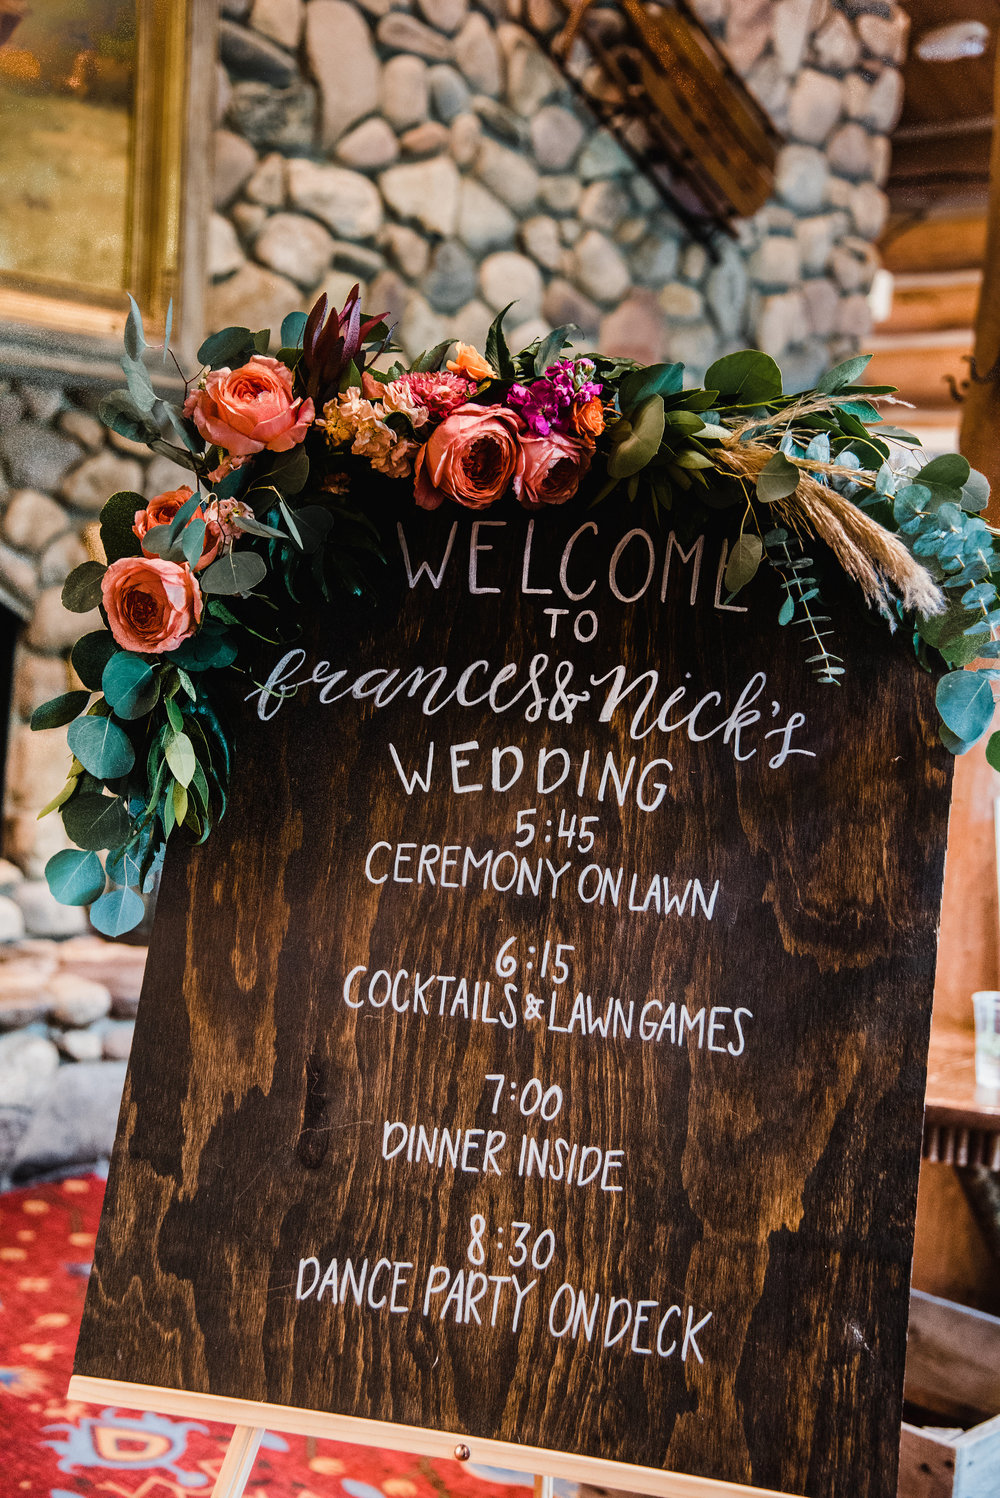 Flowers by Lace and Lilies, wedding welcome sign with colorful flowers and foliage, mountain lodge wedding